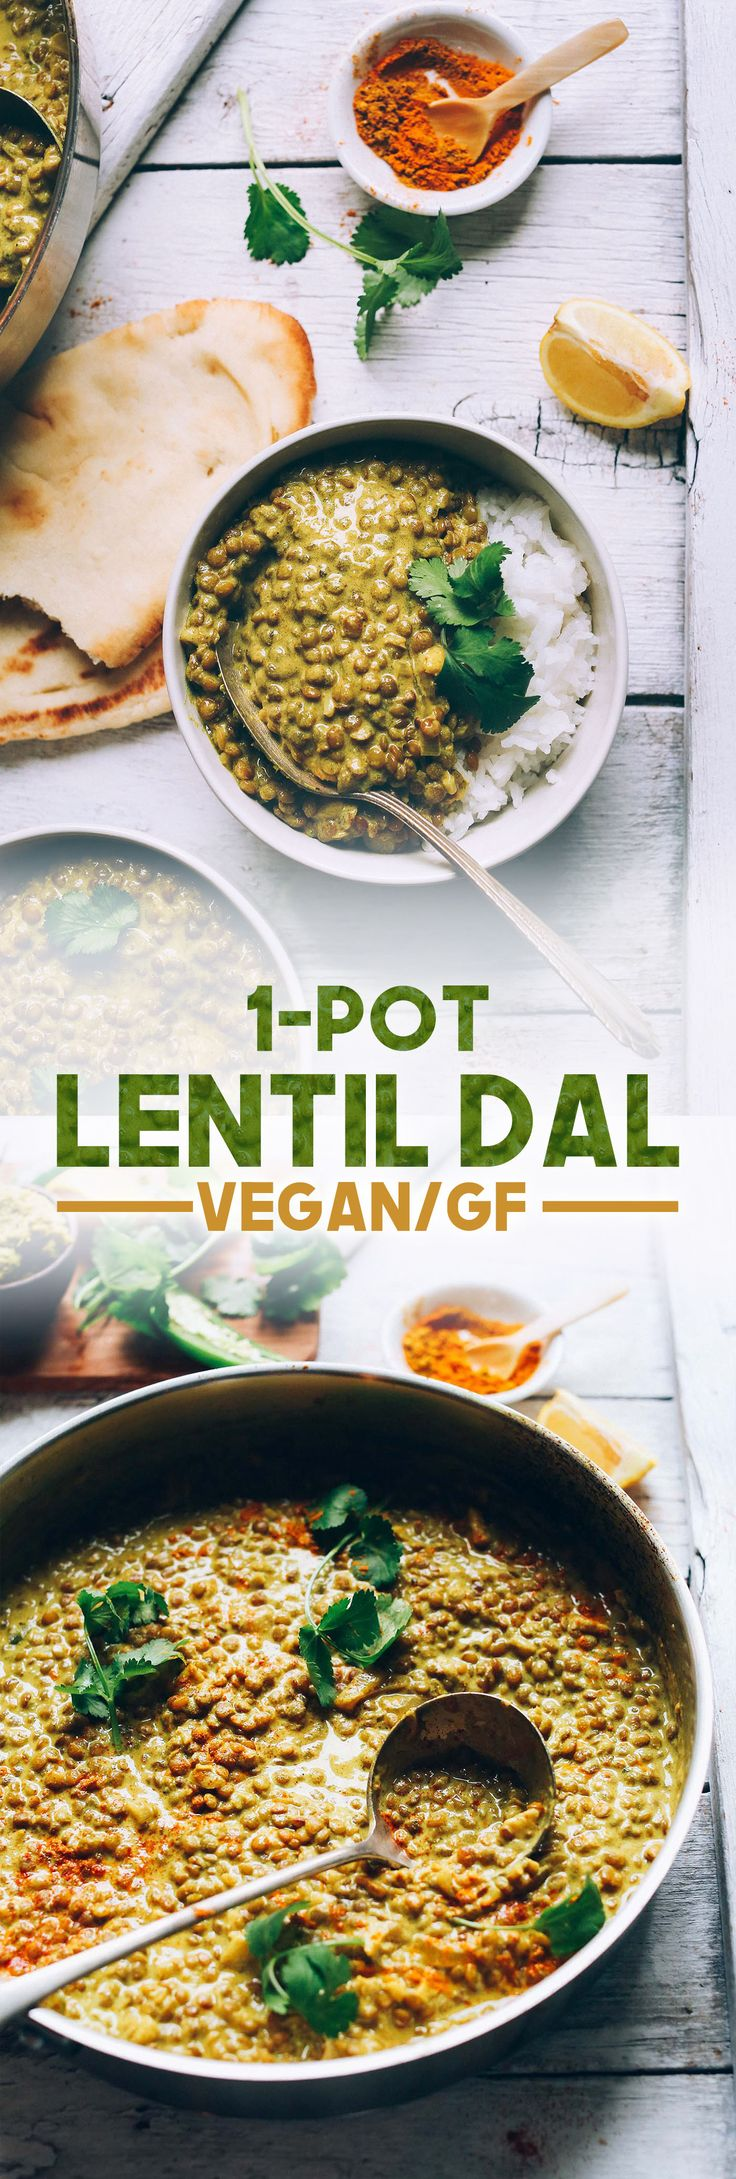 MAKE LENTILS SEPARATE TO ENSURE COOKED THROUGH.  DON'T COVER OR LET IT GET TOO HOT...IT WILL SEPARATE.  USE SPICES SPARINGLY.